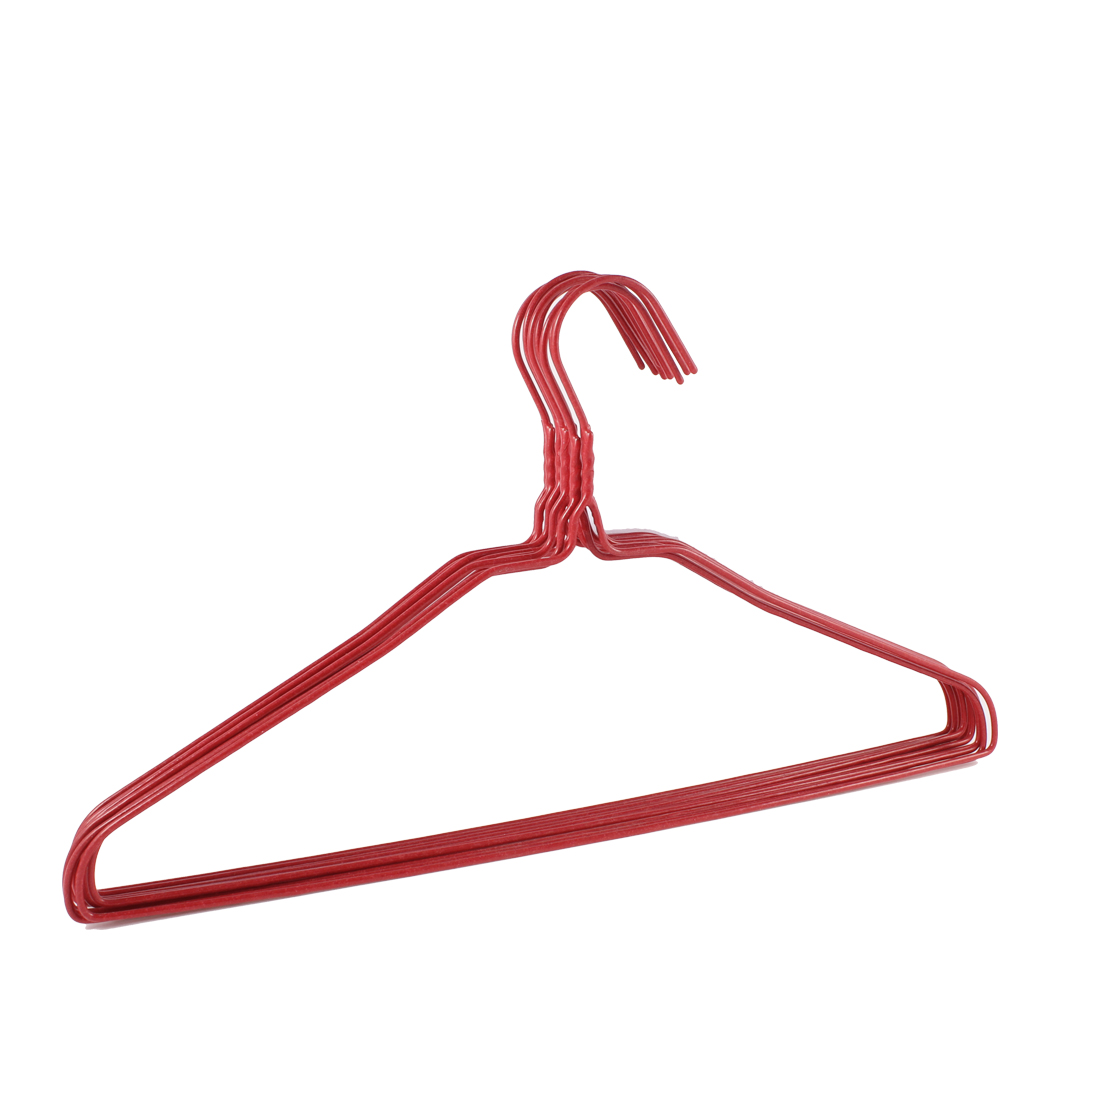 10 Pcs Red Plastic Metal 13.8inches Long Hangers for Hook Clothes Trousers